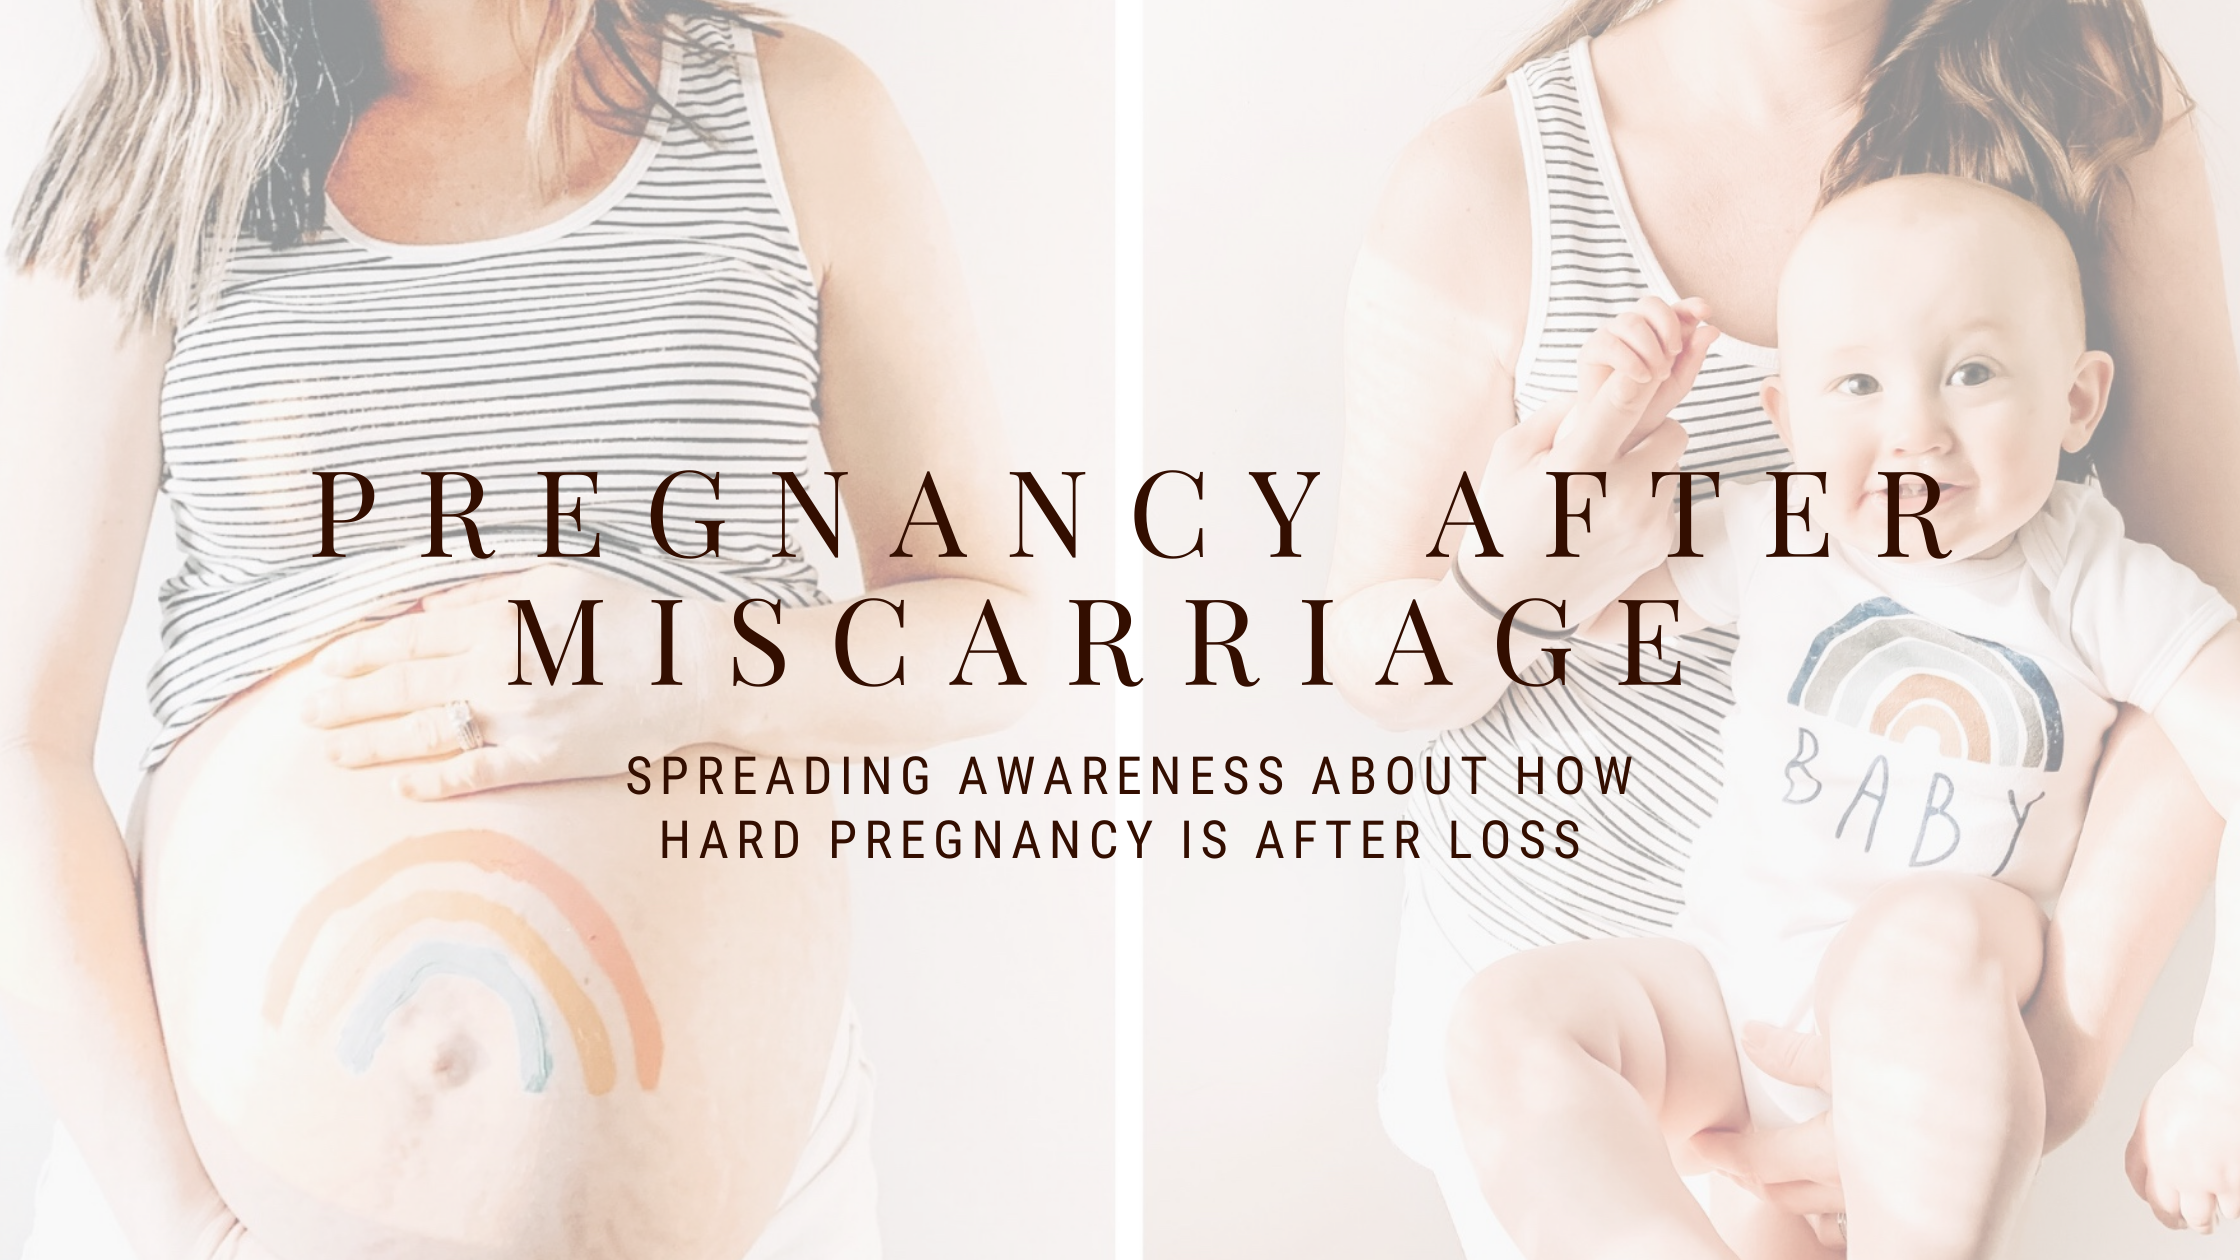 Pregnancy After Miscarriage is So Hard